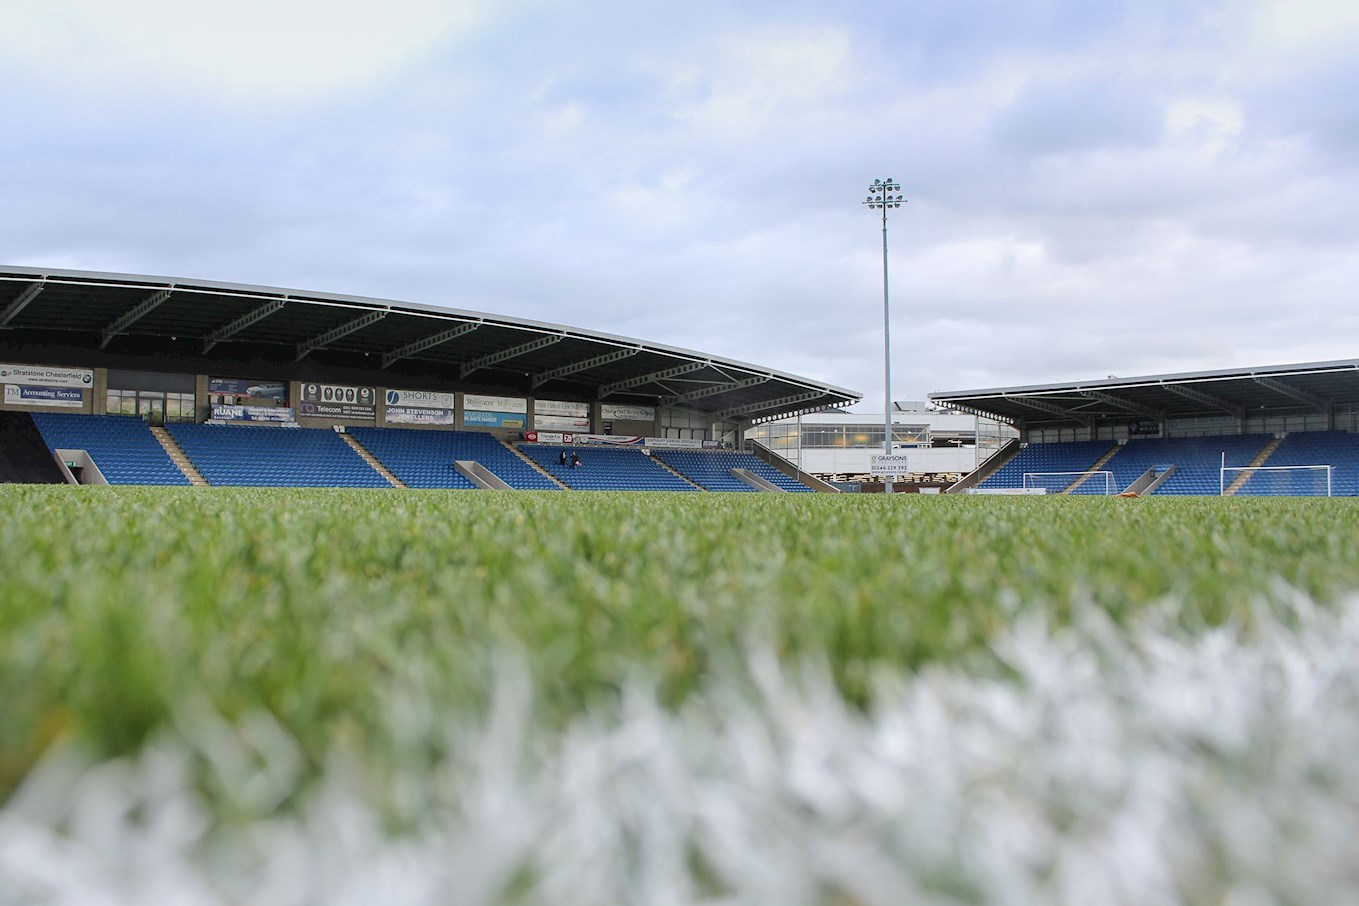 Viewing the opposition: Chesterfield - News - Lincoln City